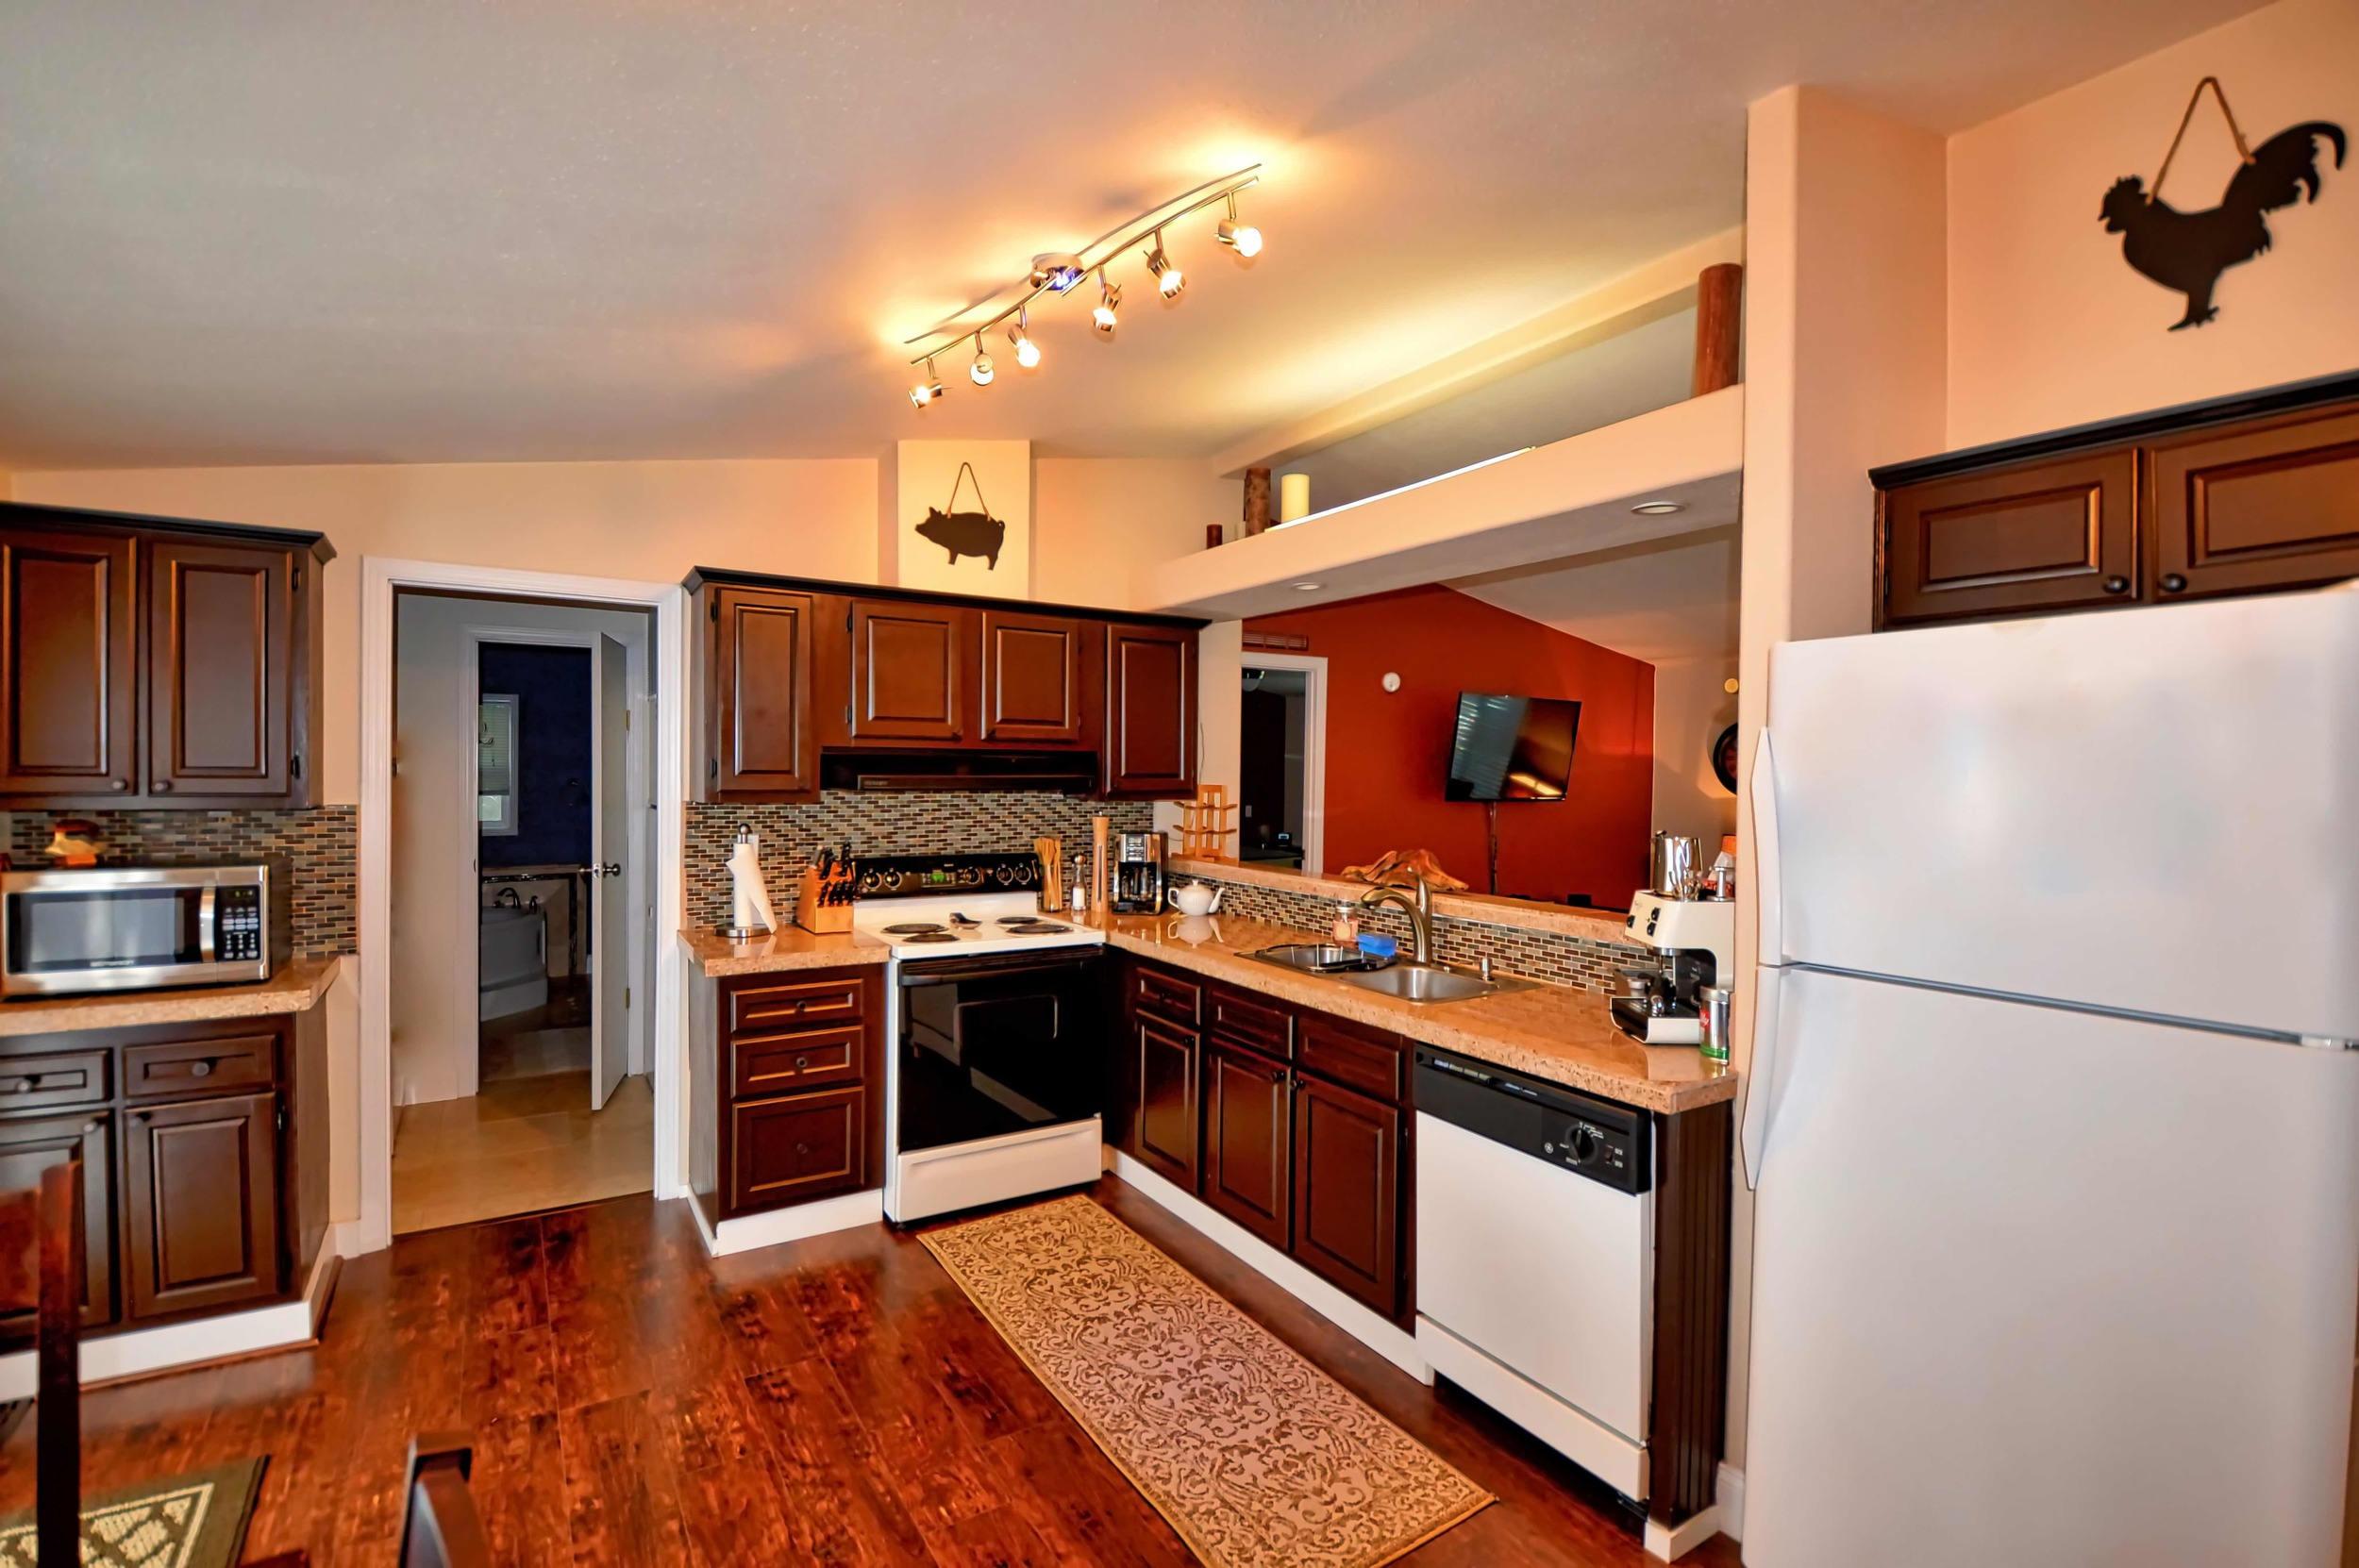 The kitchen features full sized appliances, quality cookware & knife set, coffee pot and Starbucks Barista Espresso machine.